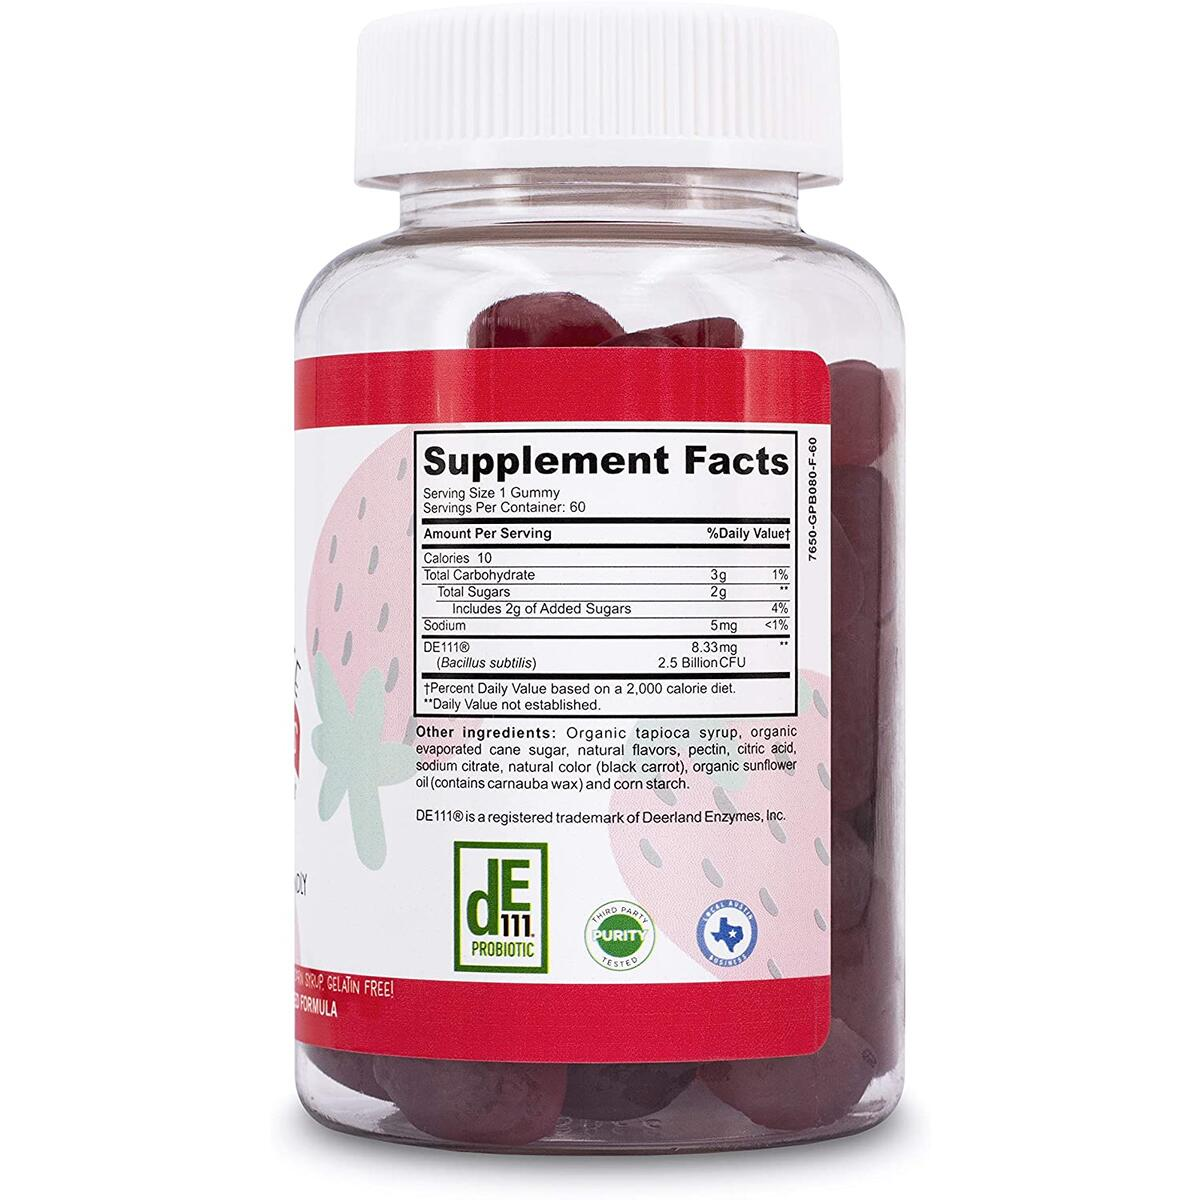 Vegetarian Naturals® Kids Whole Life™ Probiotic Gummies Vitamin for Kids and Adults; Certified Organic, Non- GMO, Supports Gut* Digestion* & Immune Support*; 2.5 Billion CFU, Vegan, 2 Month Supply